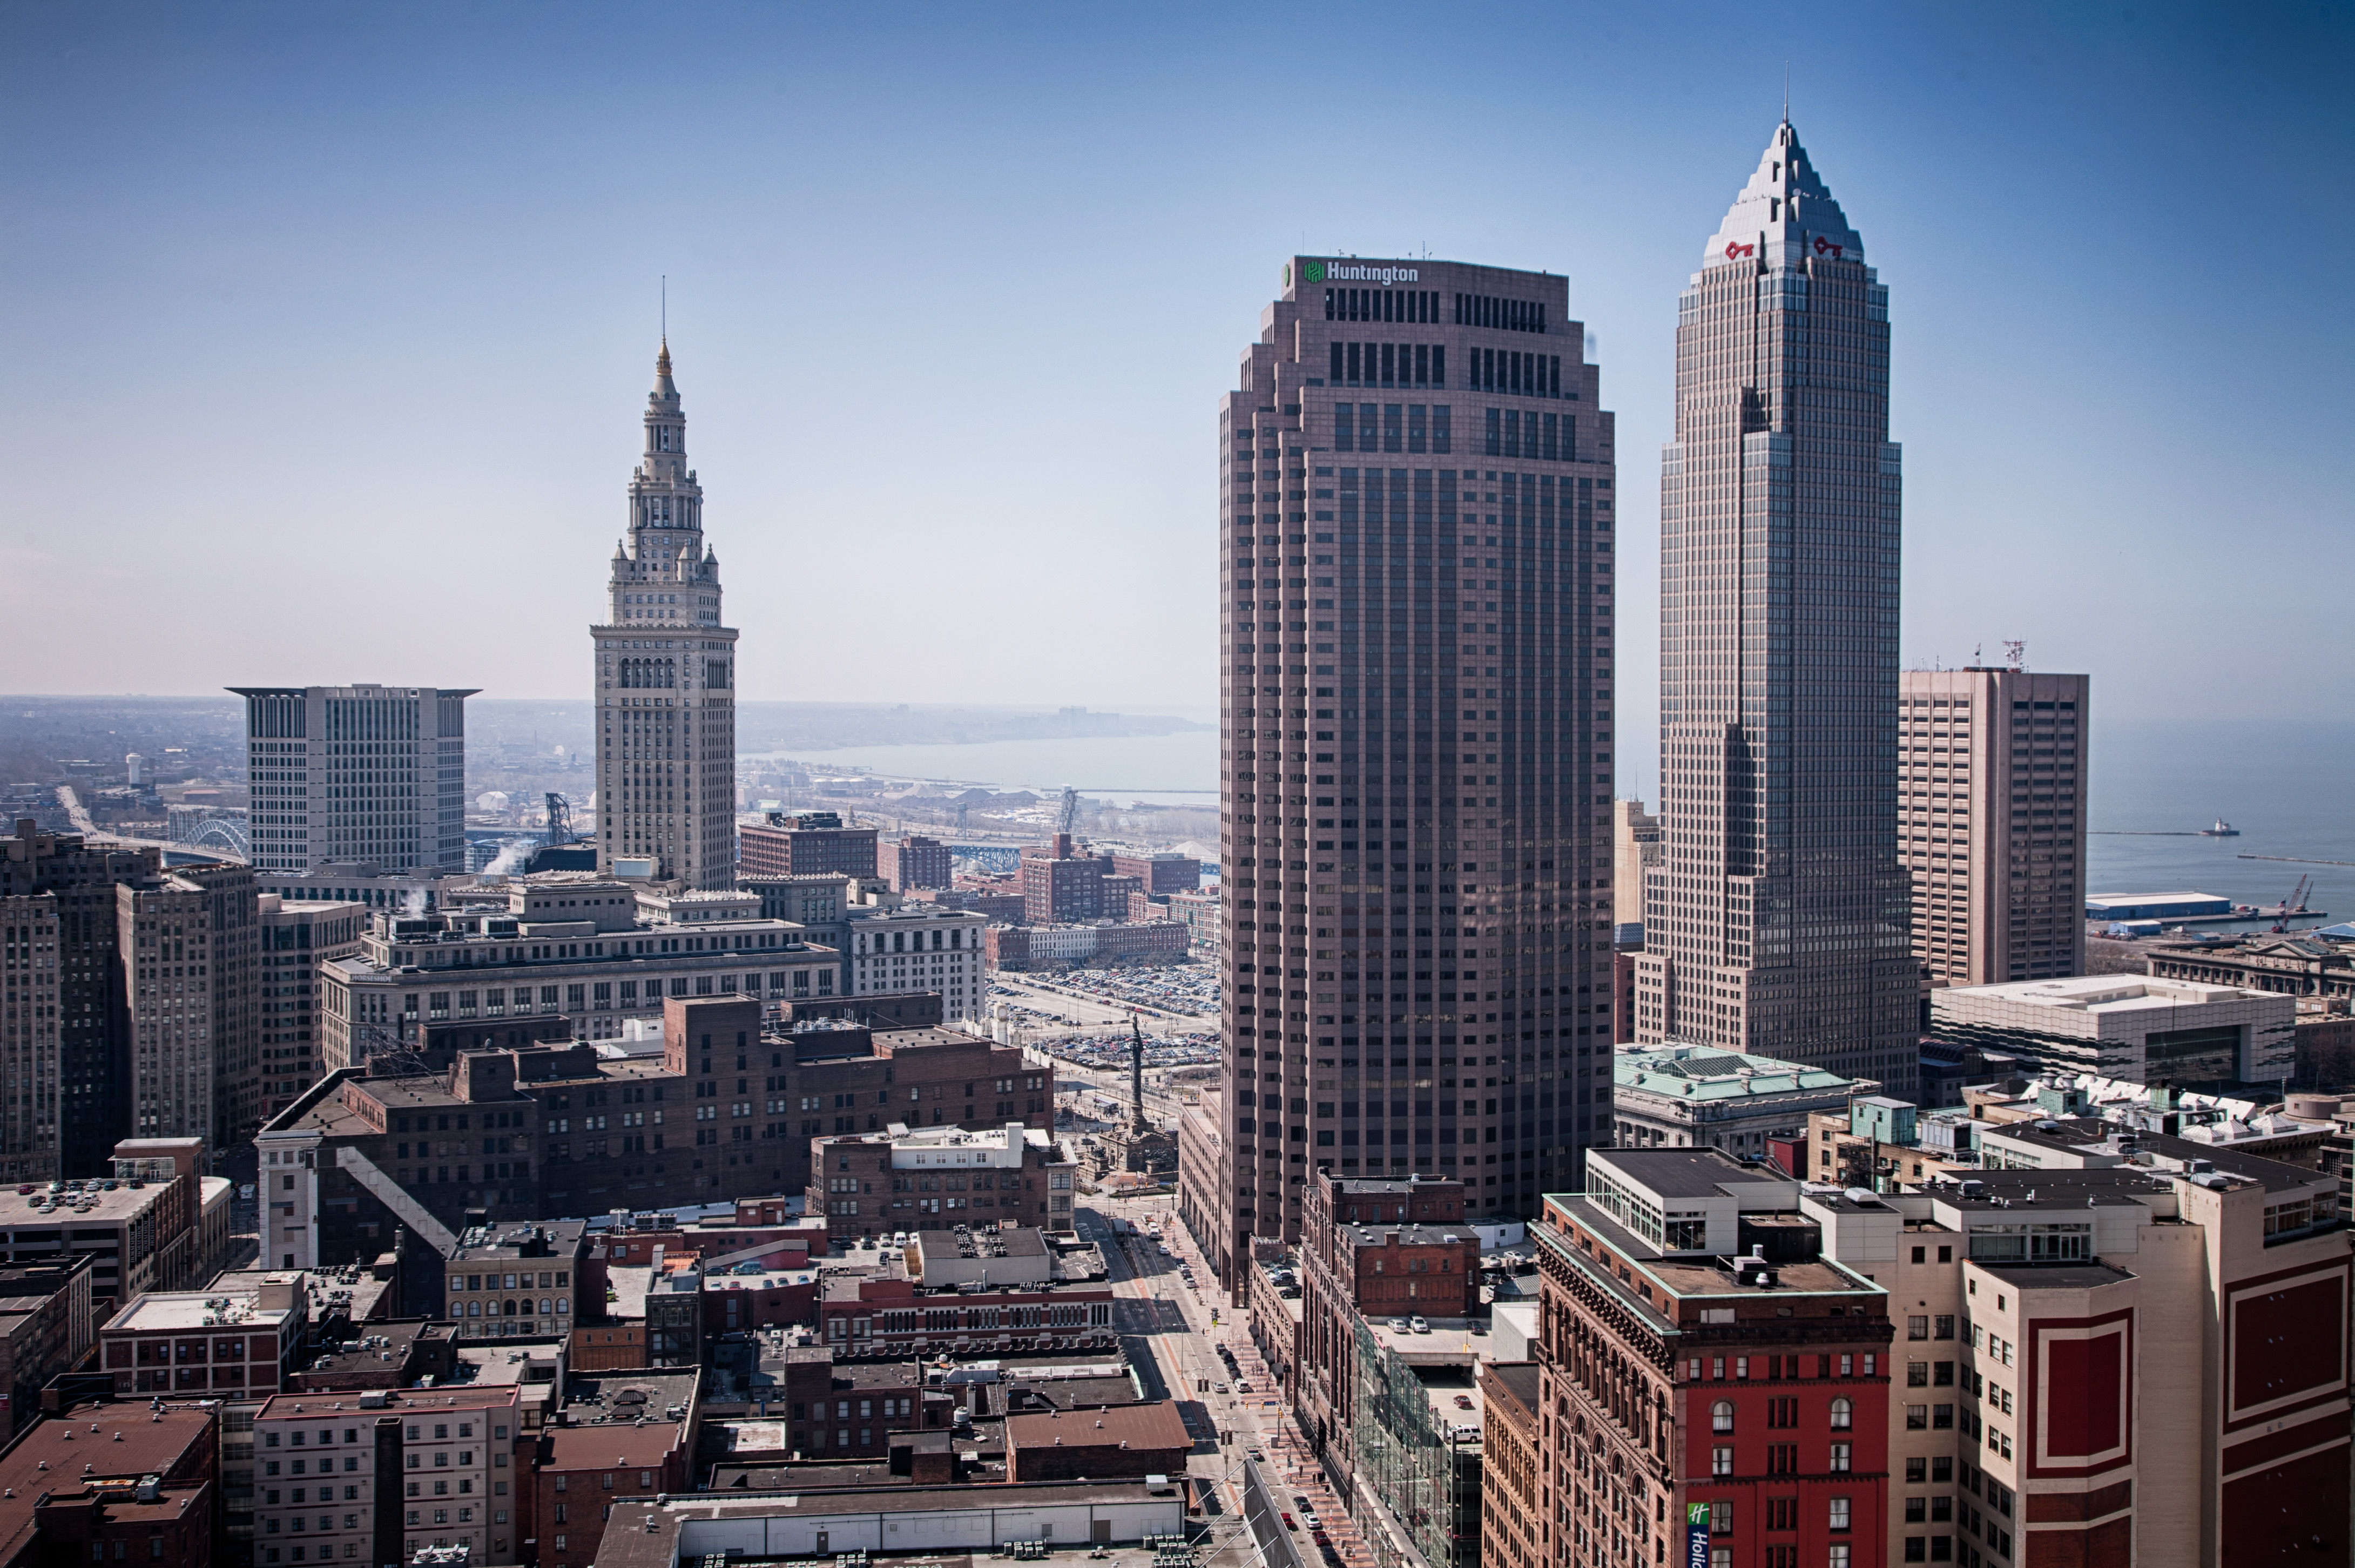 Opinions on downtown cleveland